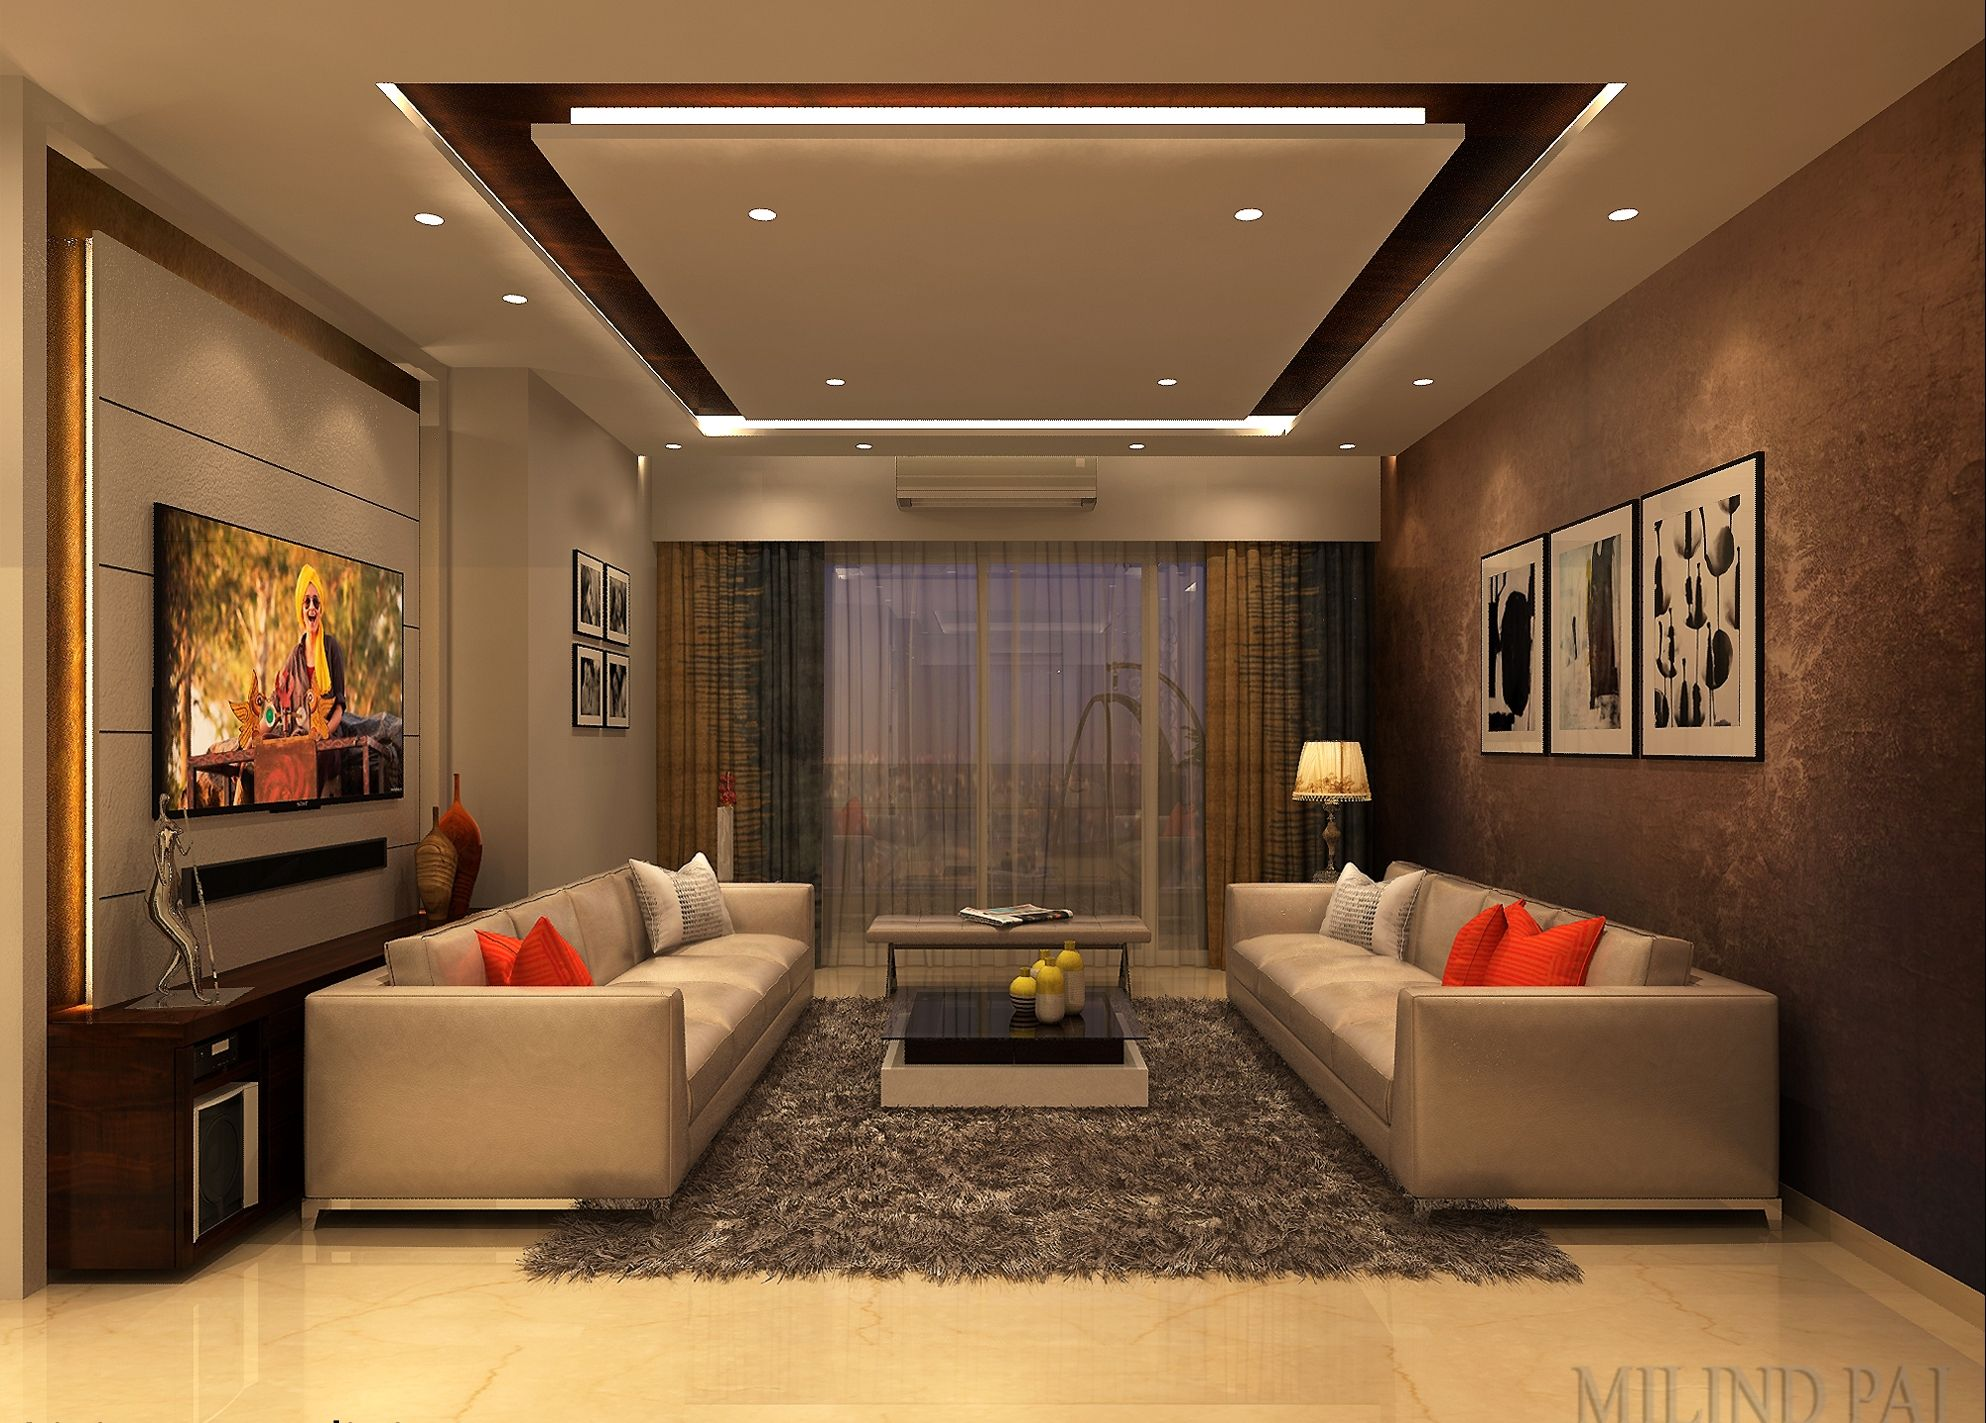 Accessorize It House Ceiling Design Bedroom False Ceiling Design Ceiling Design Living Room